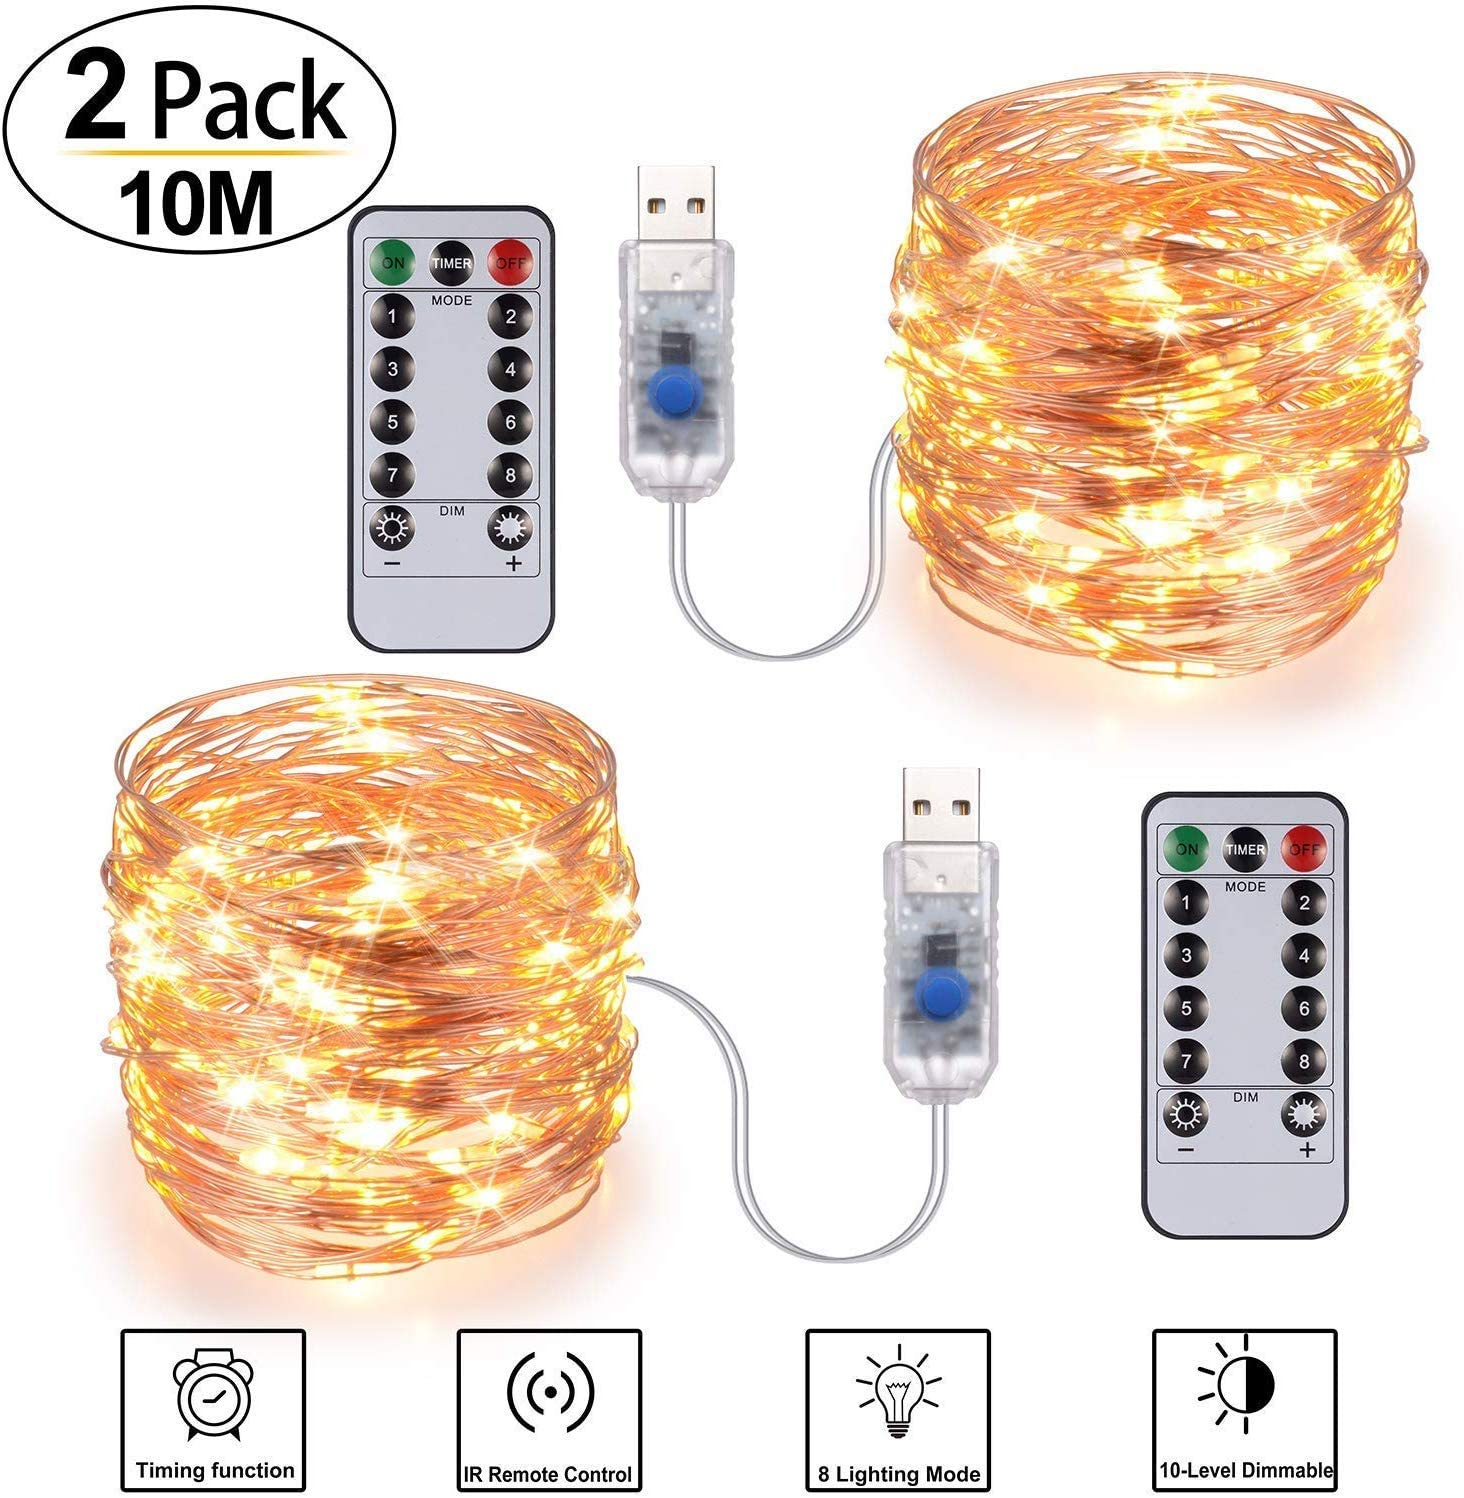 DOOK LED Fairy String Lights with Remote Control - 2 Set 100 LED 33ft/10m Micro Silver Wire Indoor USB Operated Firefly String Lights for Garden Home Party Wedding Festival Decorations(Warm White)